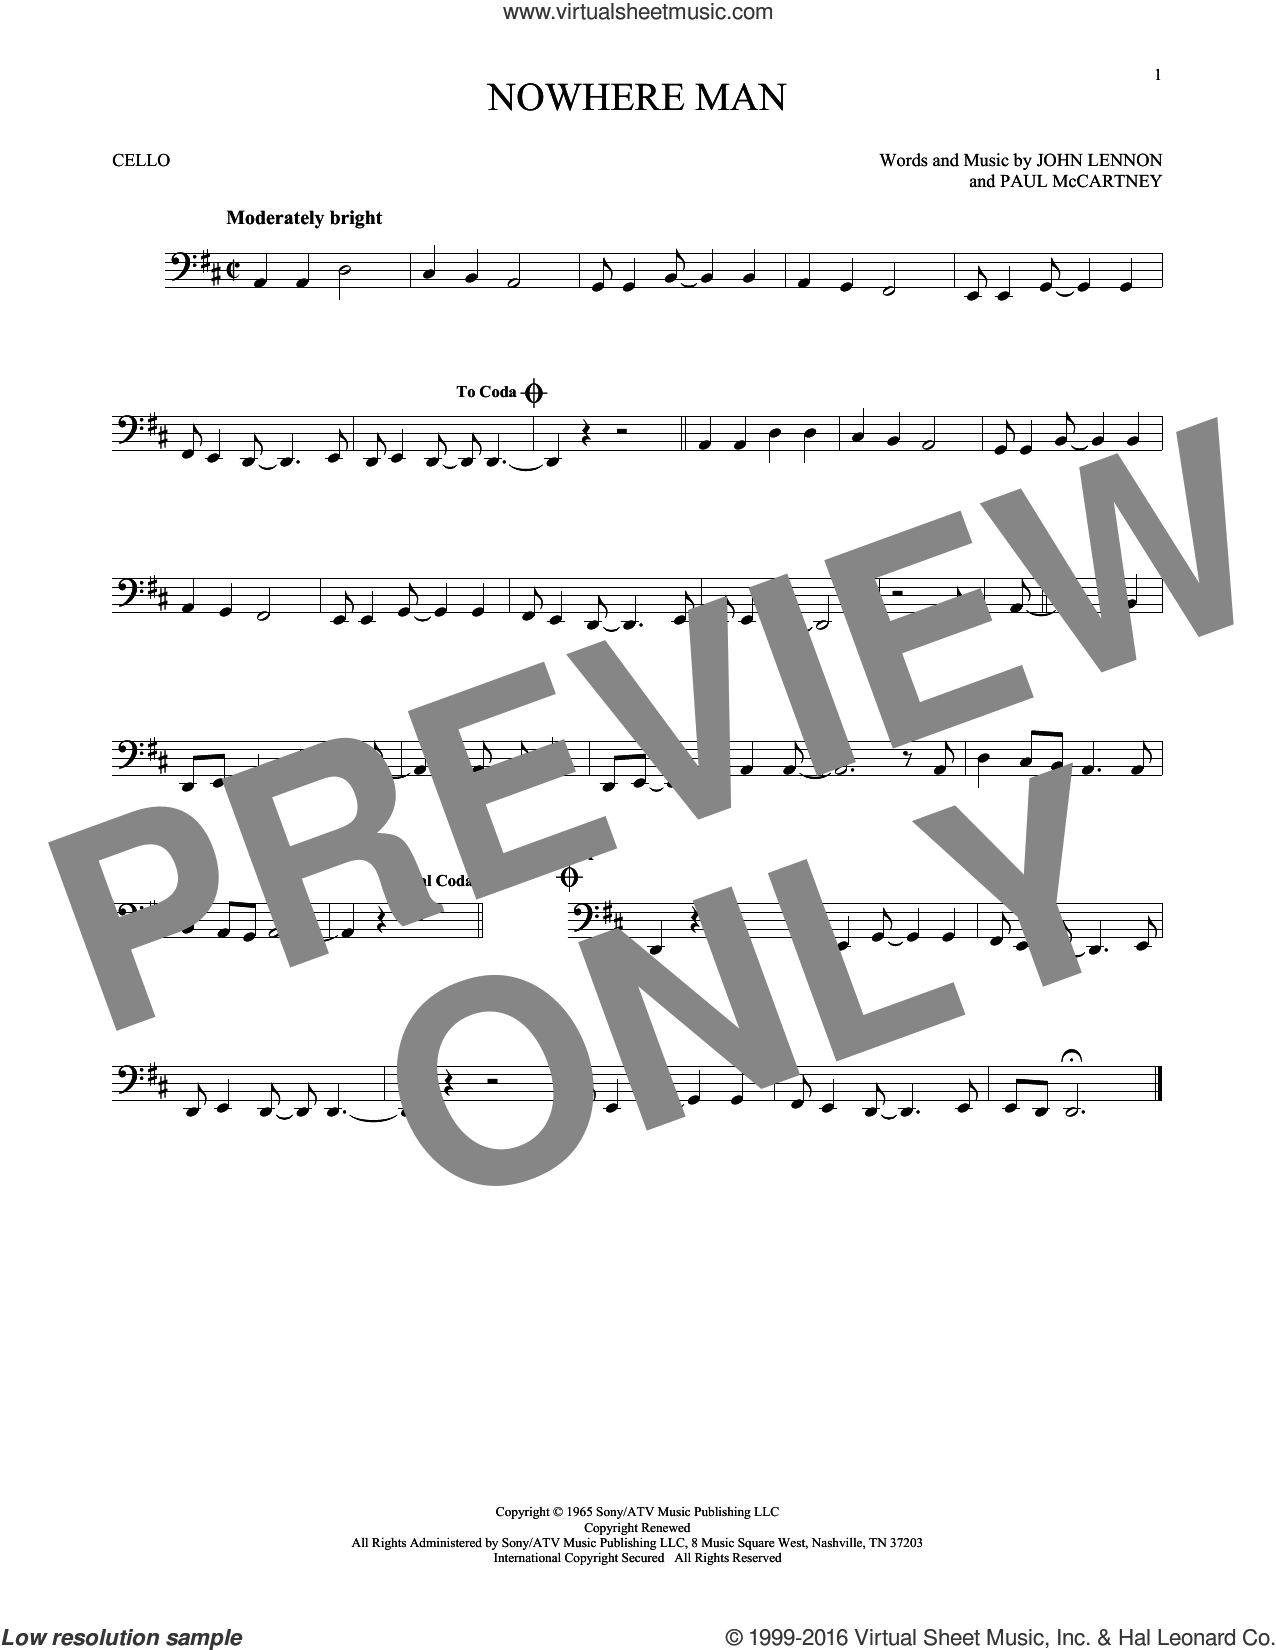 Nowhere Man sheet music for cello solo by Paul McCartney